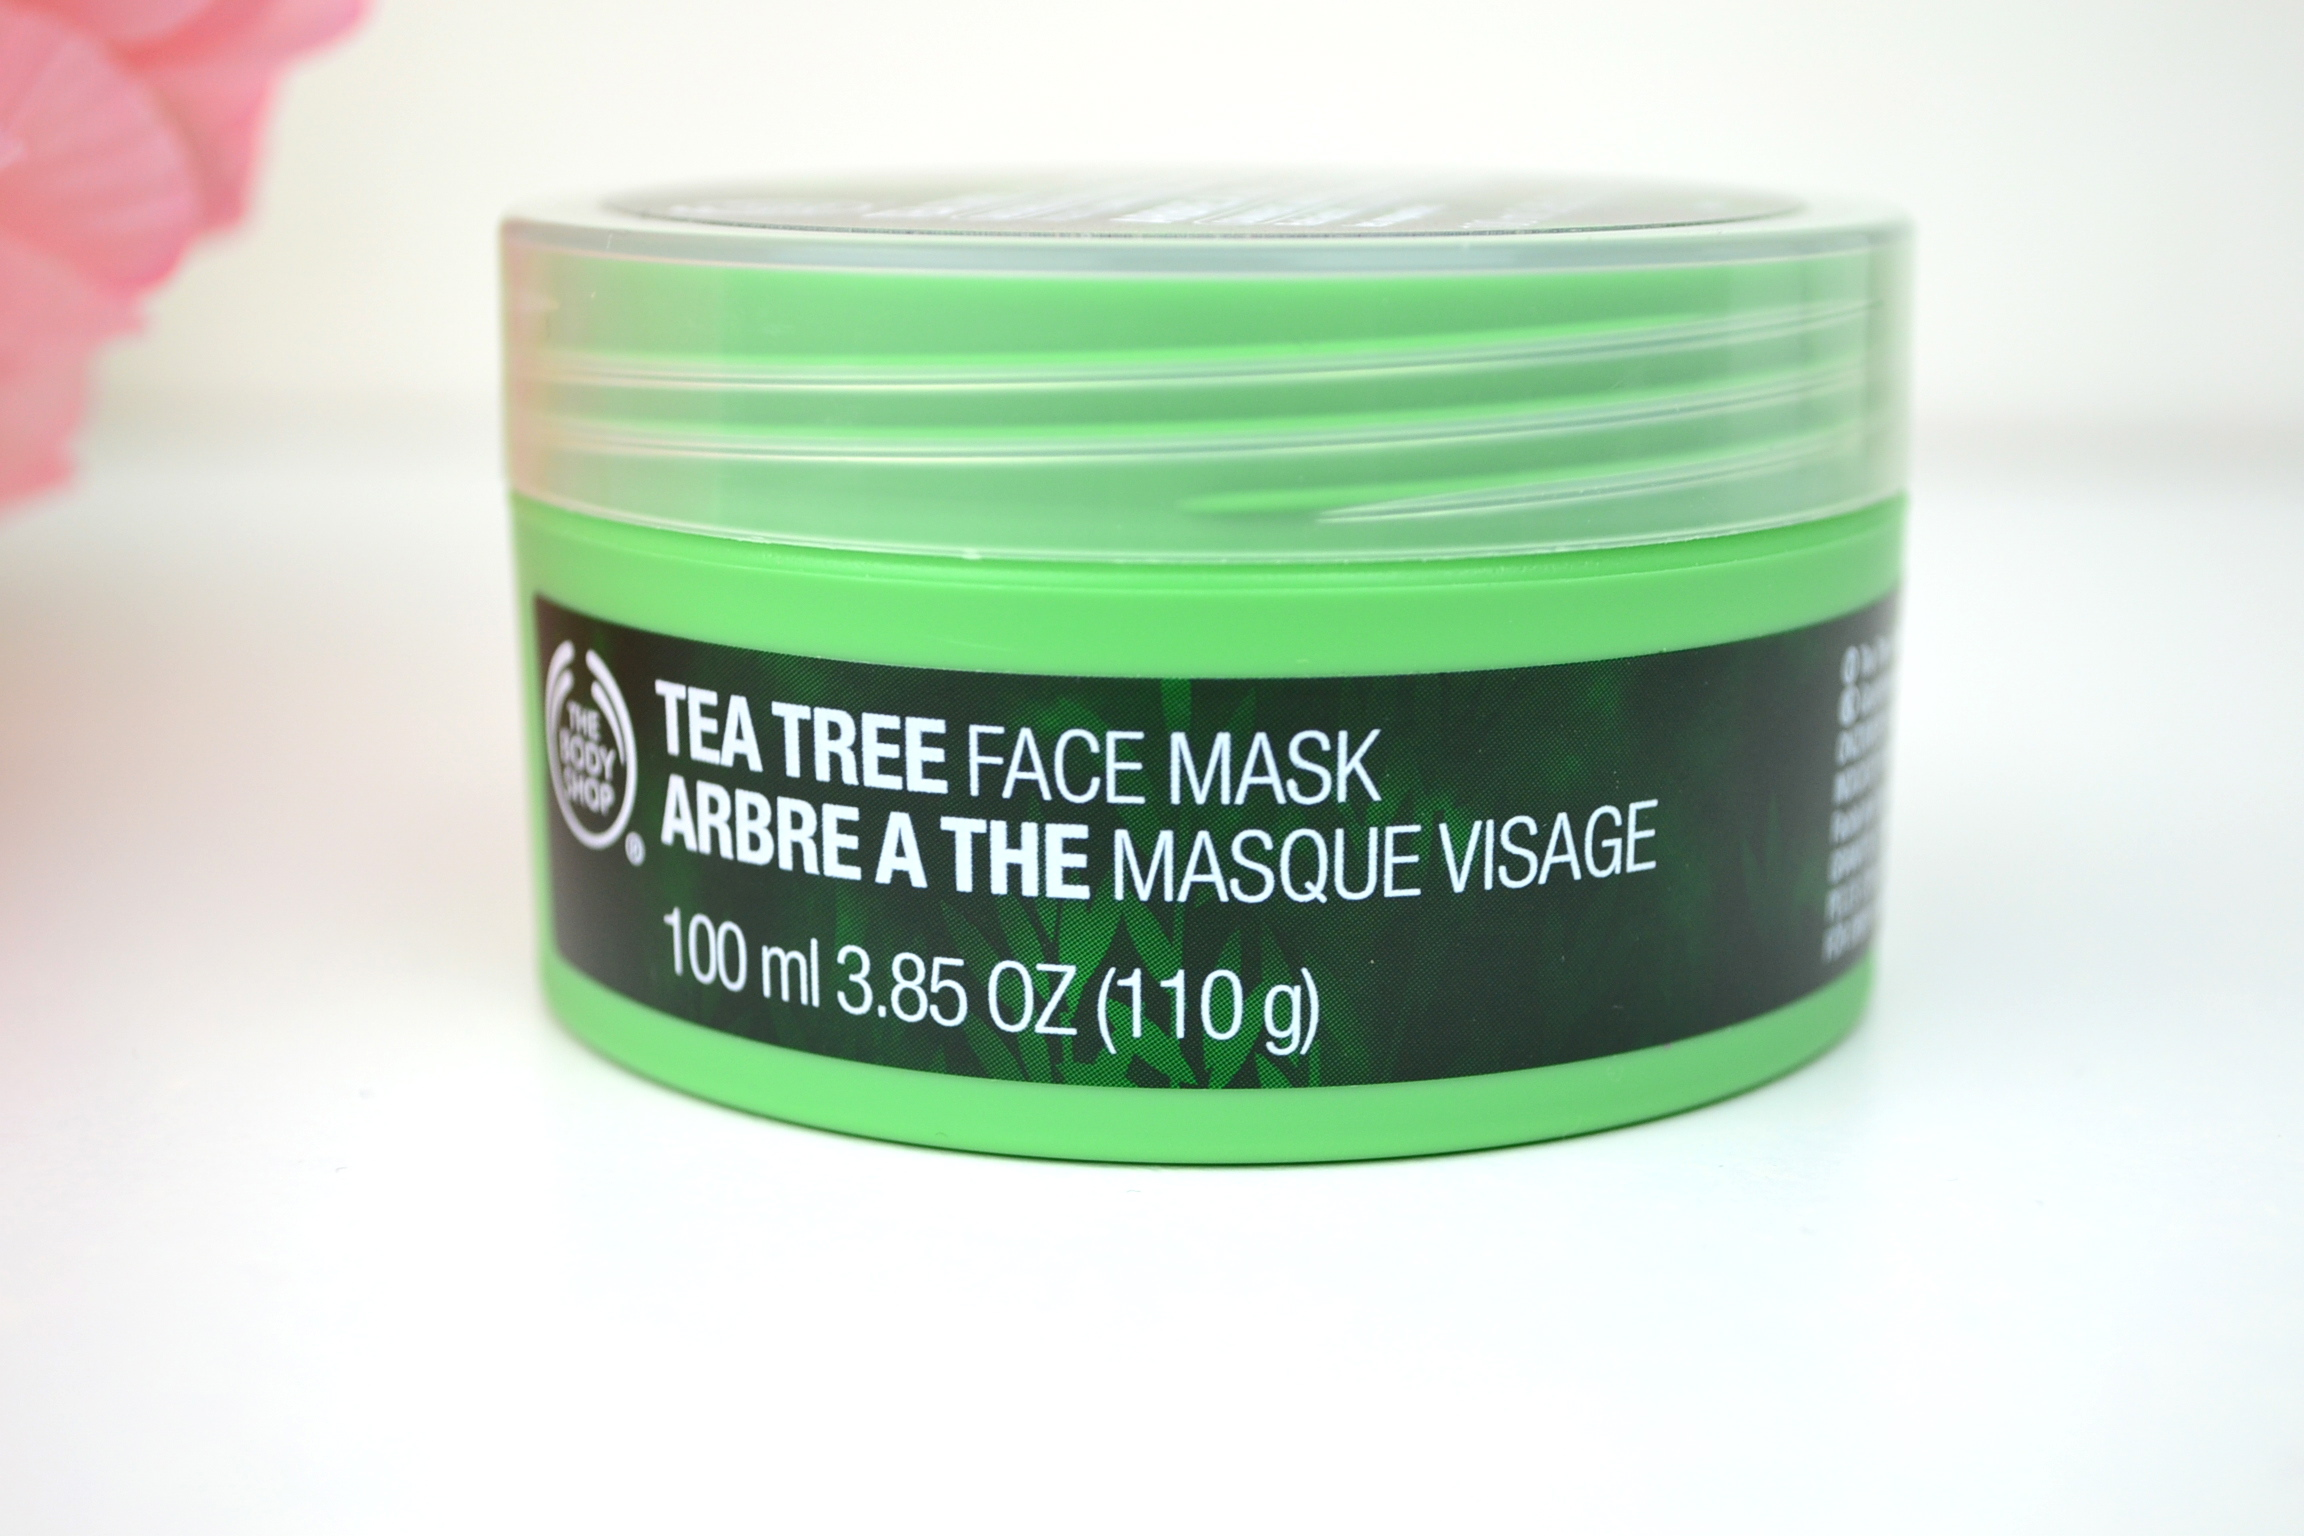 Mar 06, · You can make your own tea tree face mask at home using organic tea tree oil and common pantry ingredients like honey, avocado, and coconut oil. You can also whip up a tea tree face mask with Indian healing clay, which is a great option if you have oily, acne prone skin%(6).